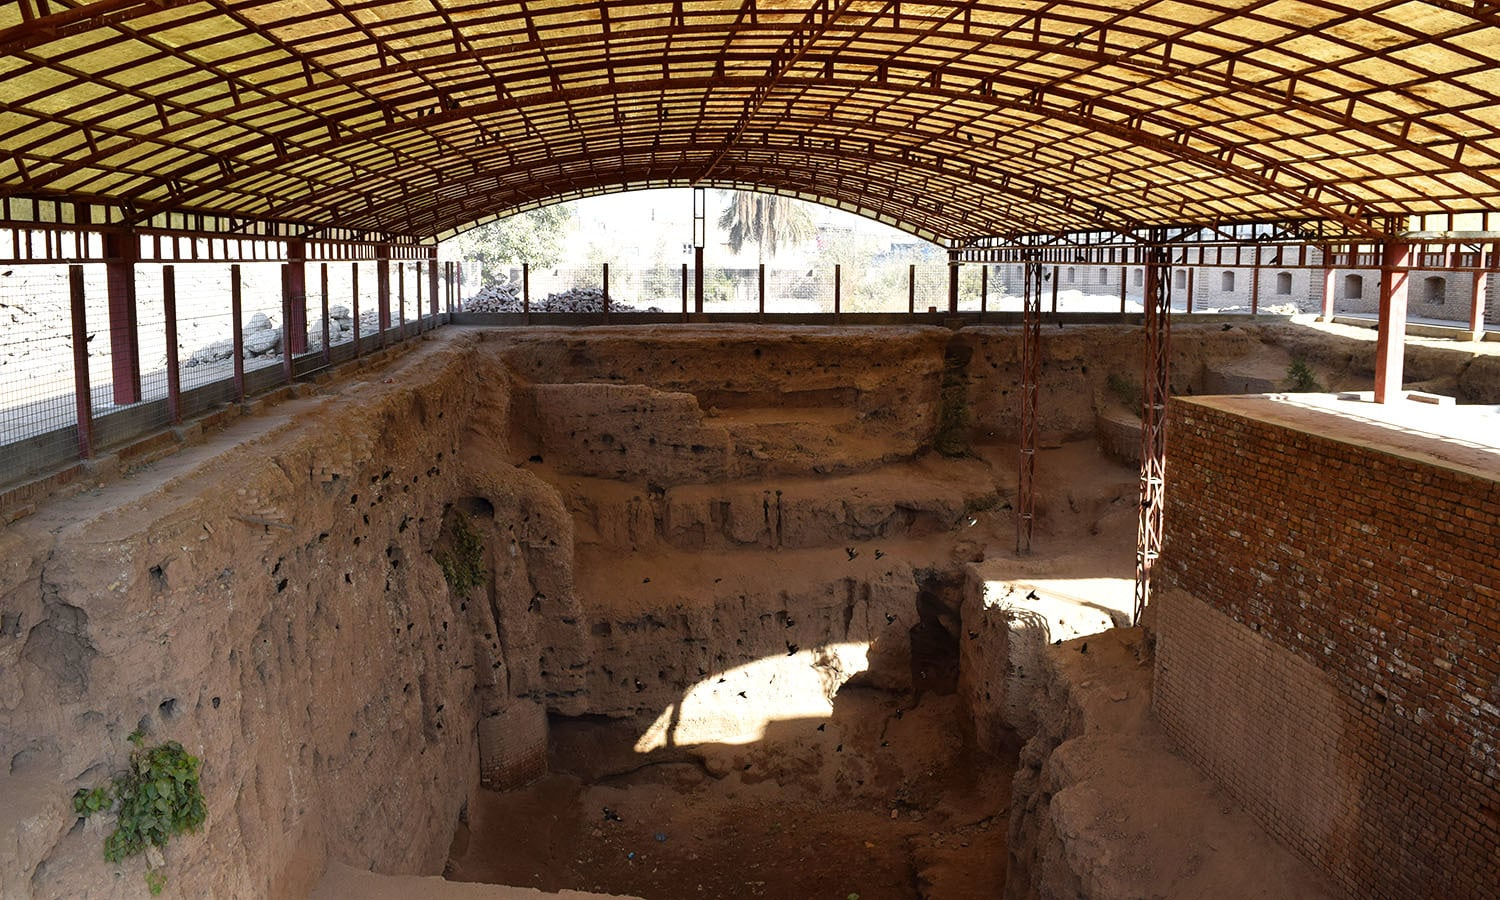 Gorkhatri excavation site dating from 200 BCE.—All photos by the author